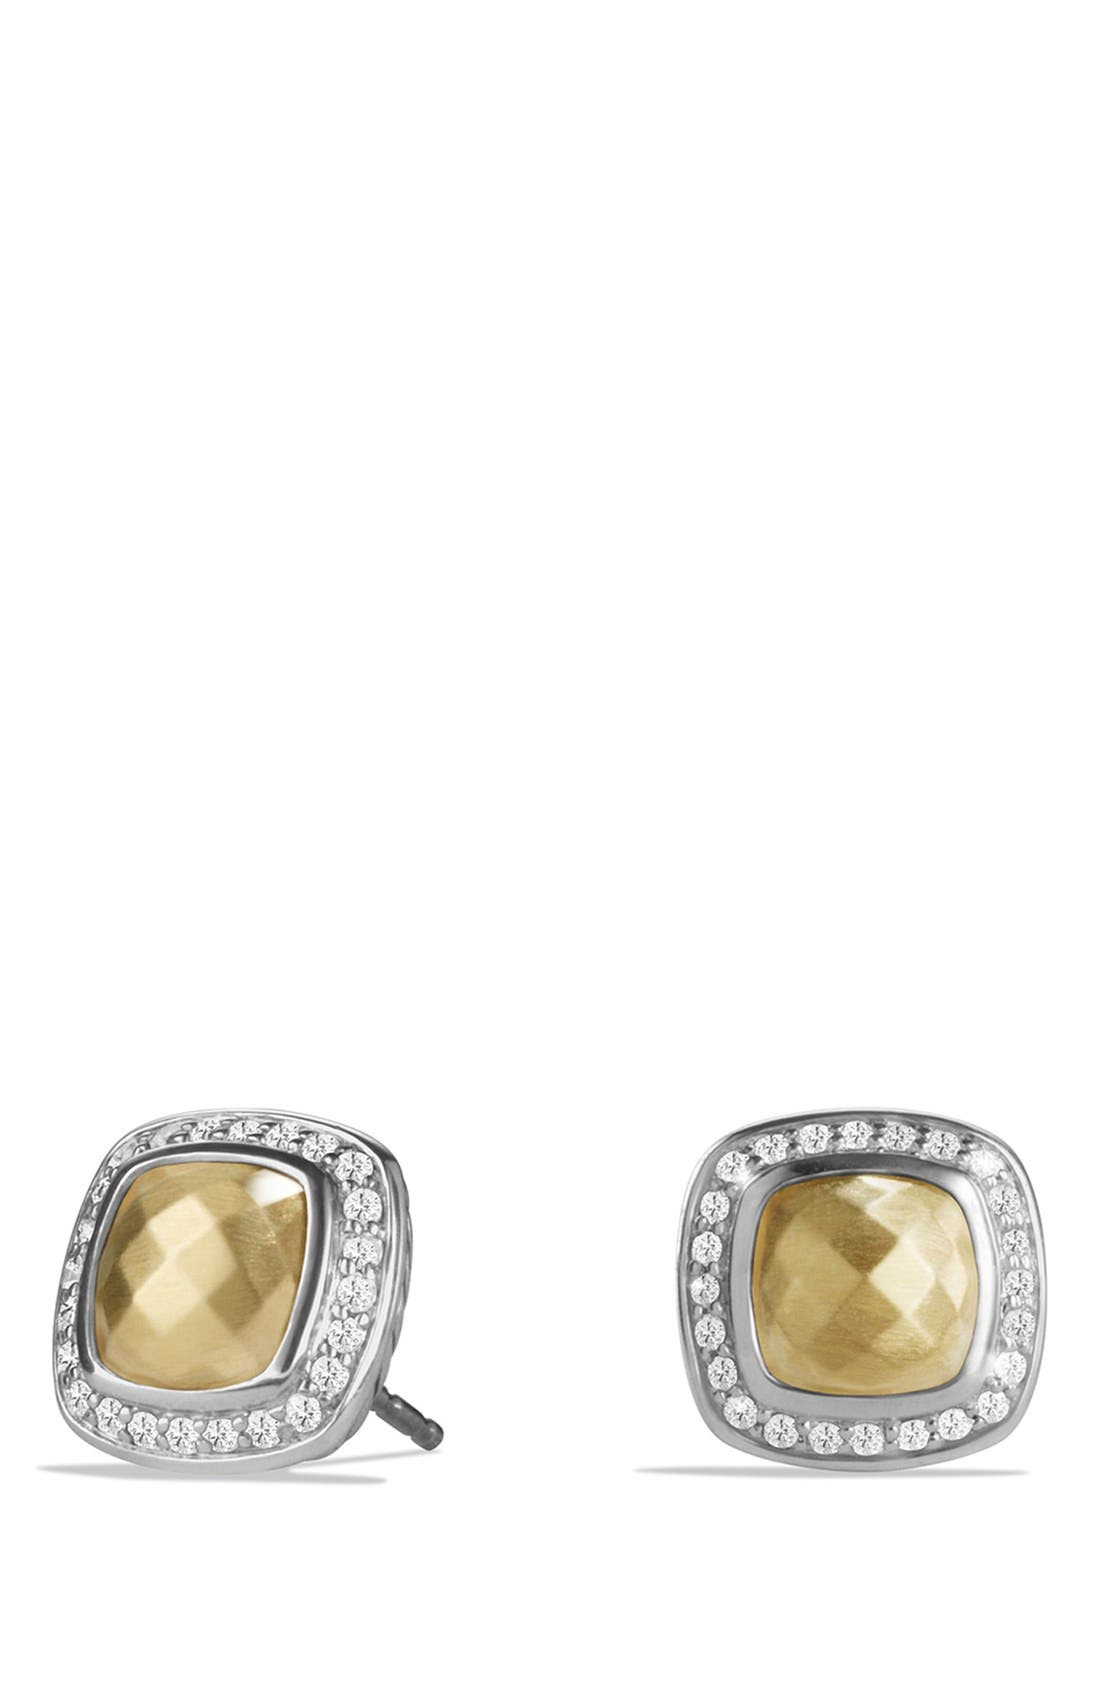 'Albion' Earrings with 18K Gold Dome and Diamonds,                             Main thumbnail 1, color,                             GOLD DOME